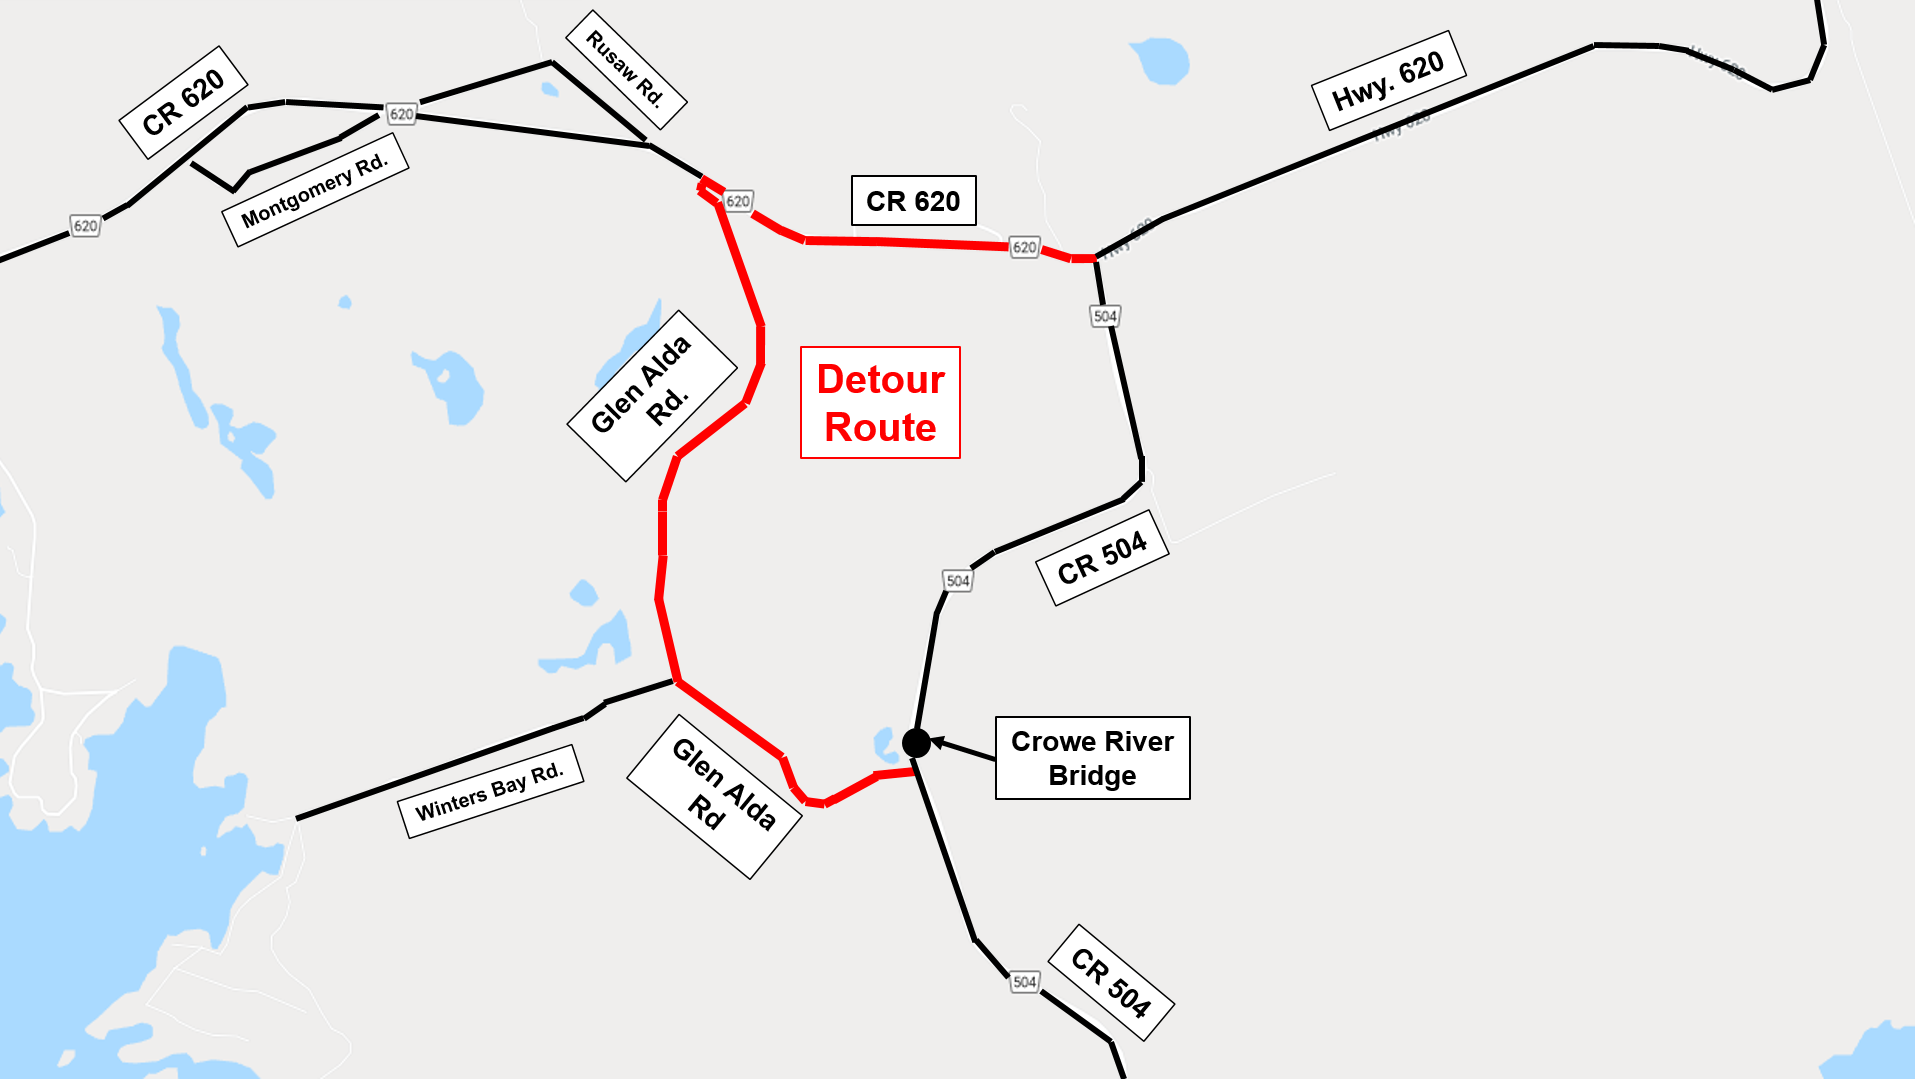 County Road 504 at Crowe River Bridge Detour Route